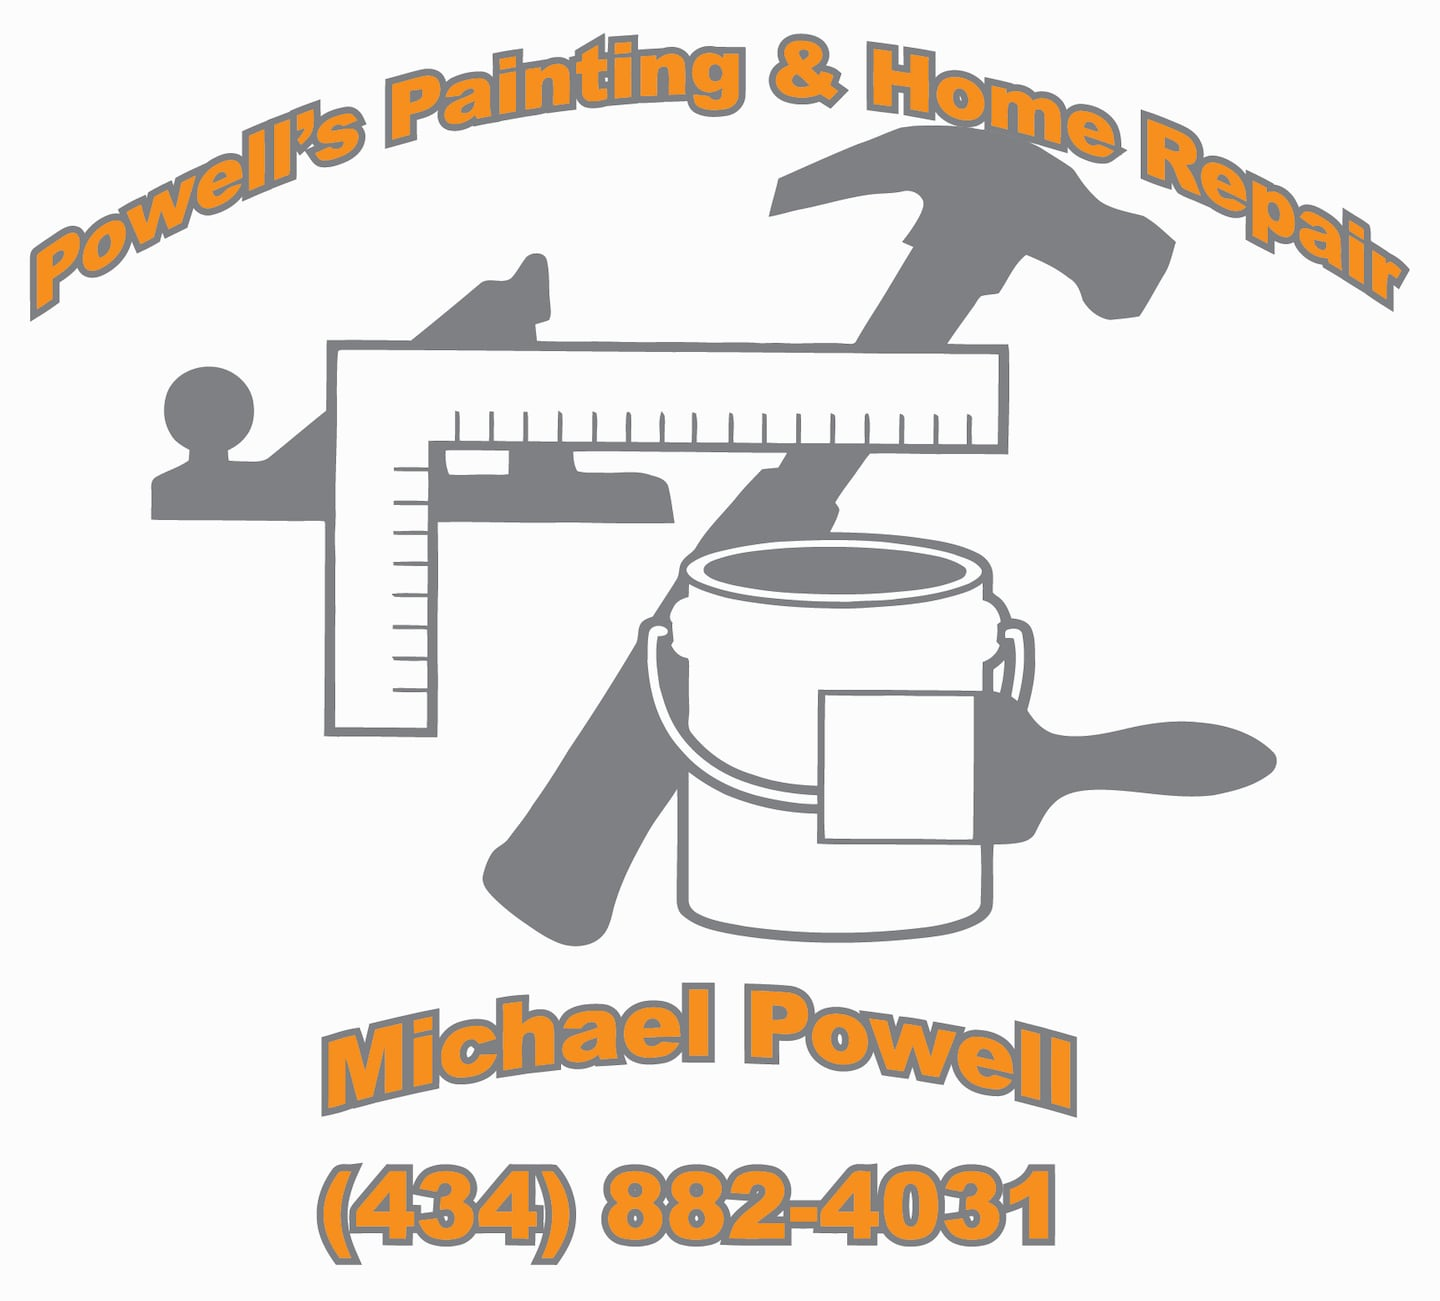 Powell's Painting & Home Repair